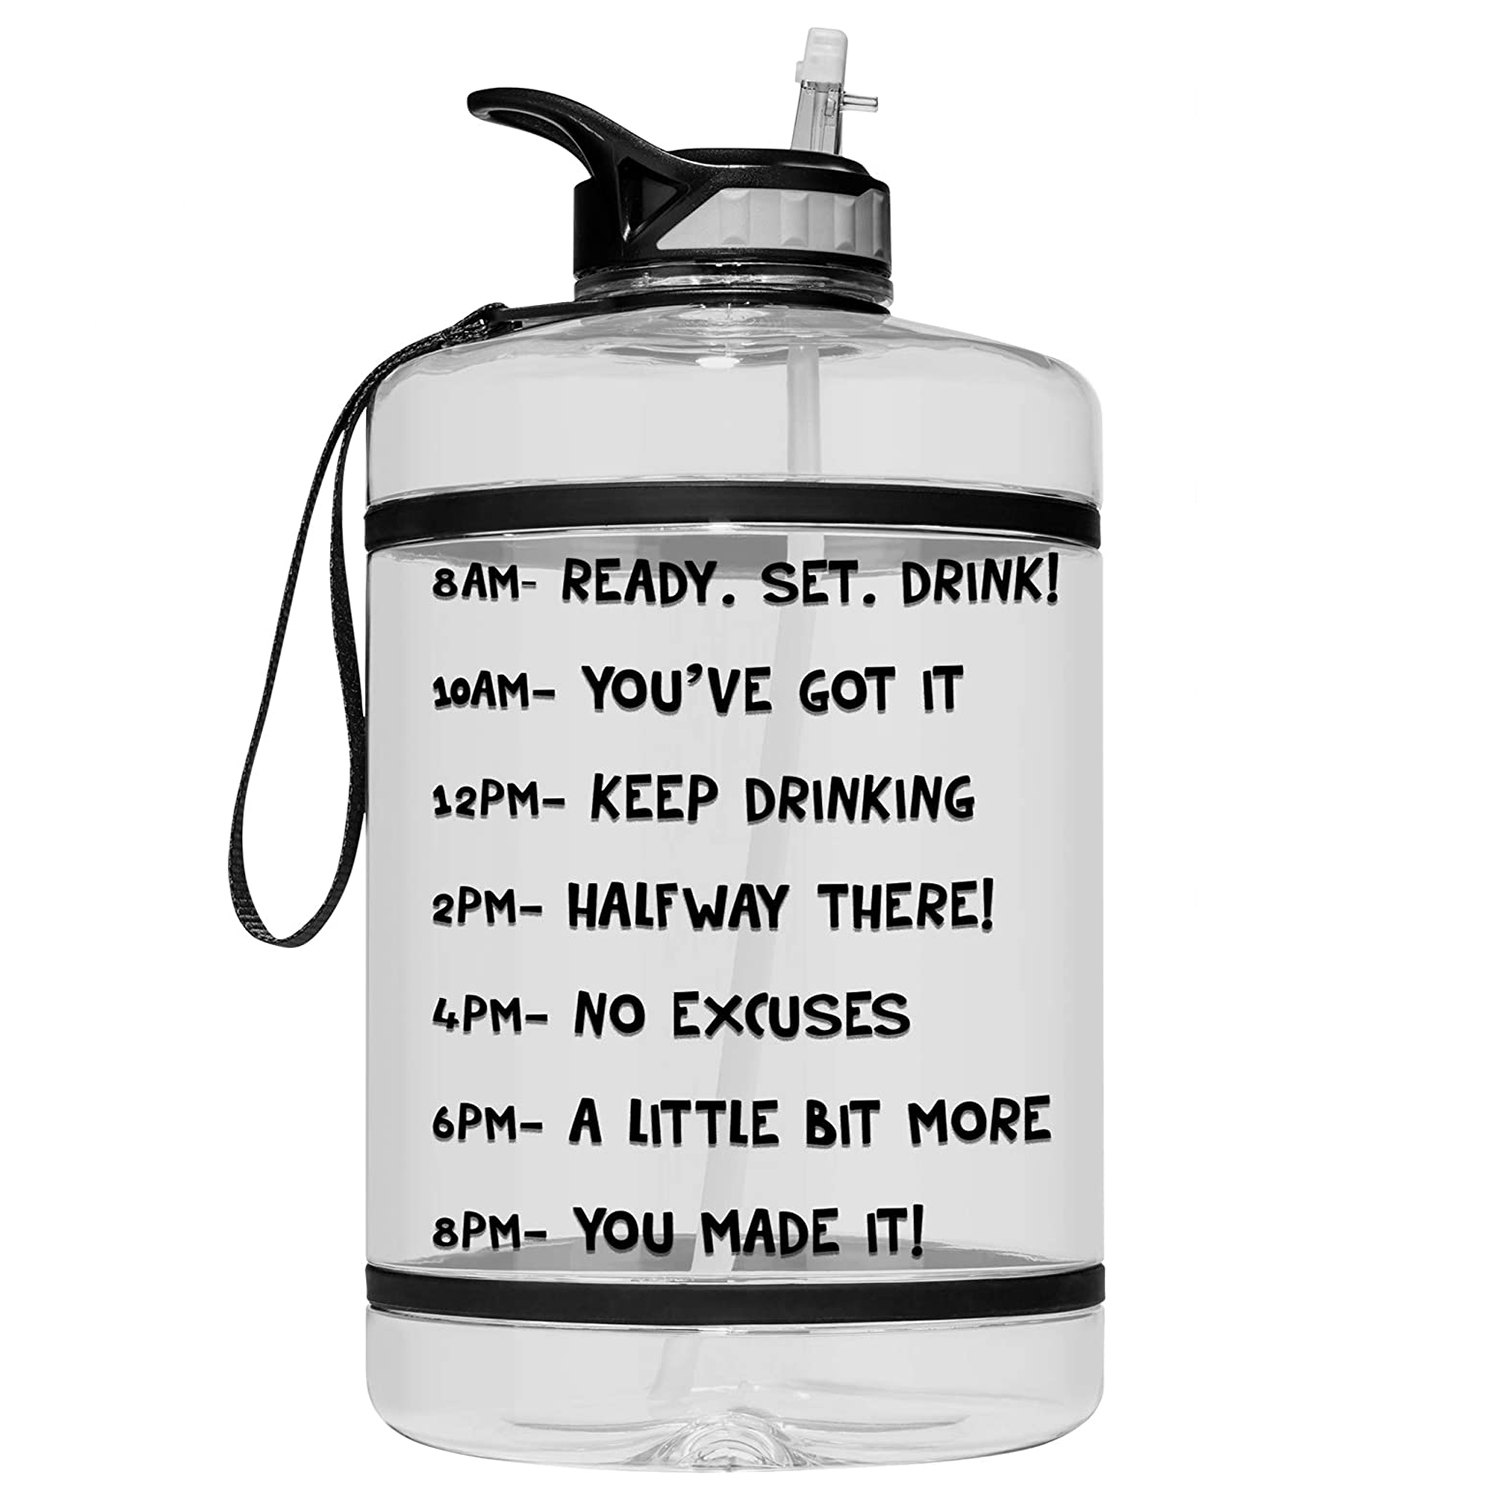 HydroMATE Gallon Motivational Water Bottle with Time Marker